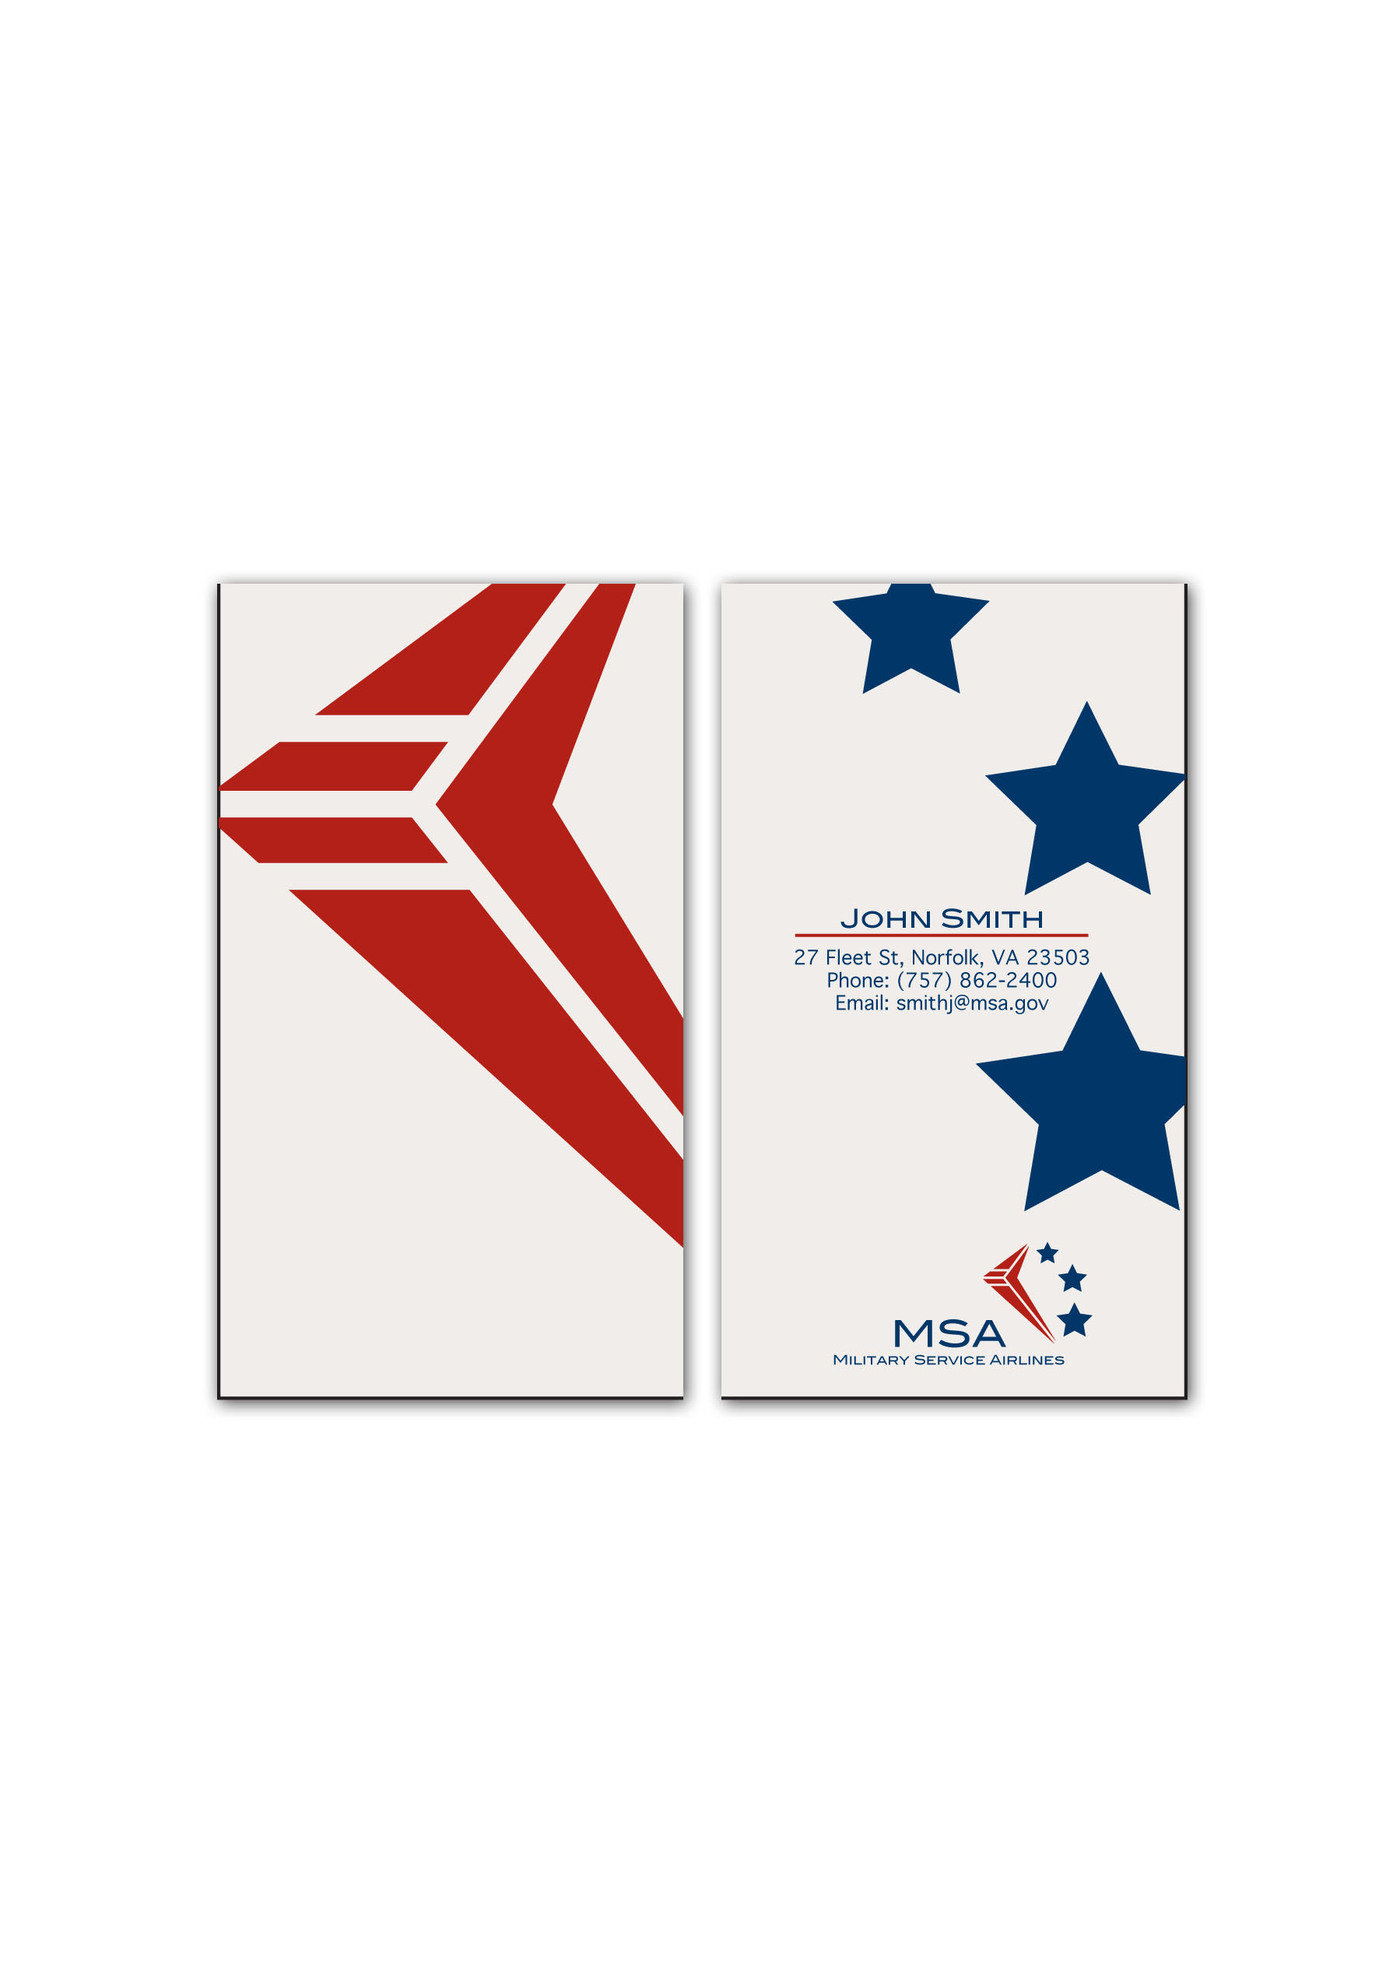 Corporate identity project by stacy biesterveld at coroflot msa business card front back reheart Gallery